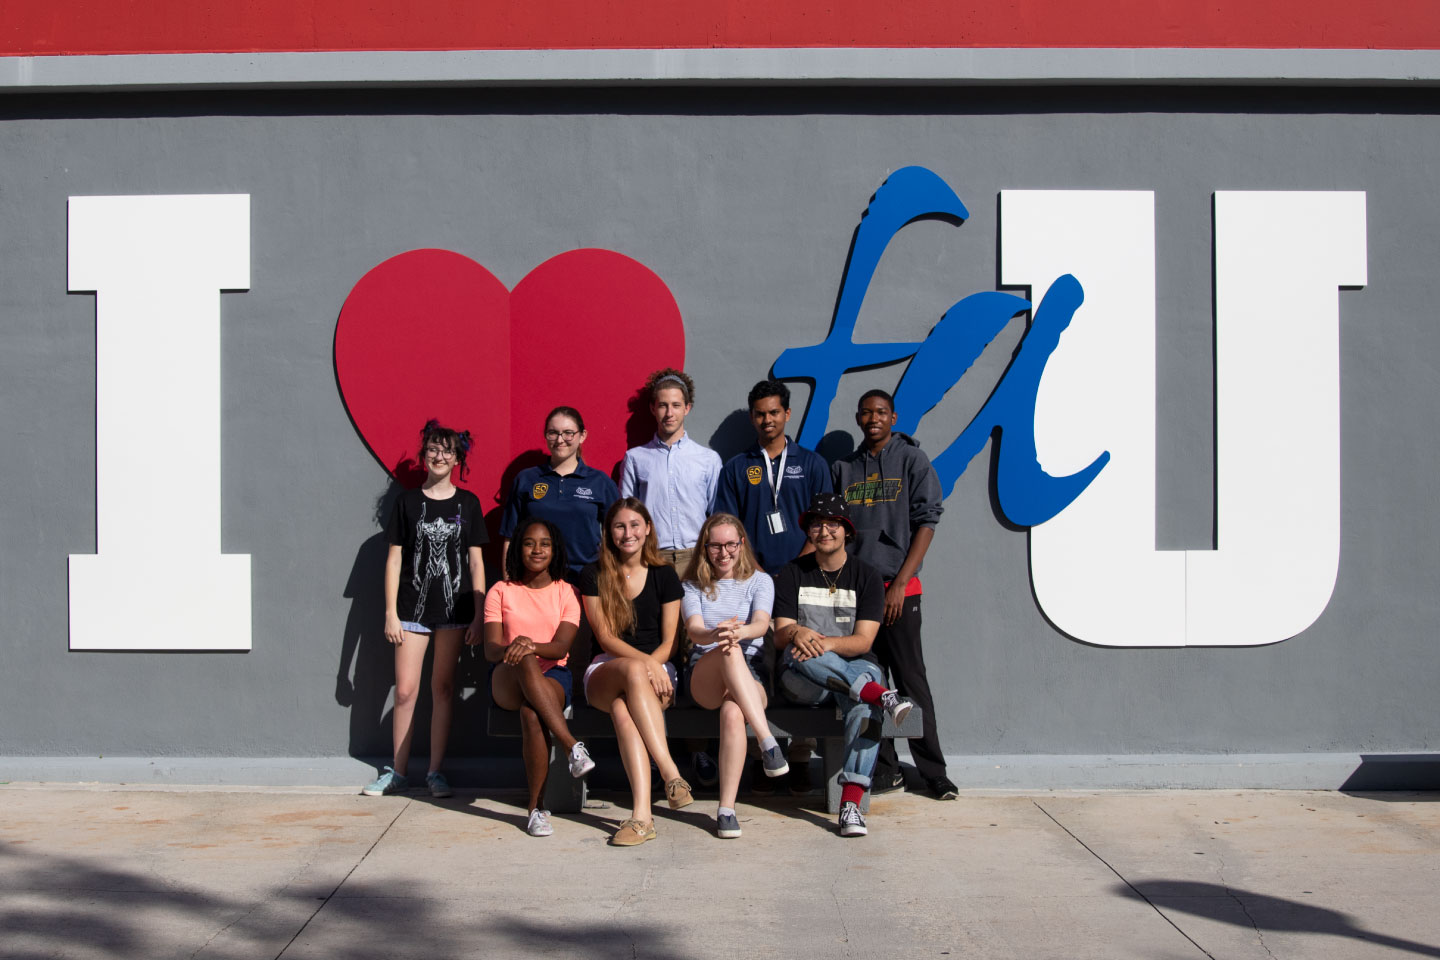 From left to right, Delaney Dobson, Noa Abiri, Eli Levit, Ajay Desai, Rudy Paul, Cydni Turner, Paige Fries, Willow Hearne and Diego Jerez. Not pictured, Joseph Michaud, Dustin Karp and Eleanor Stuart.